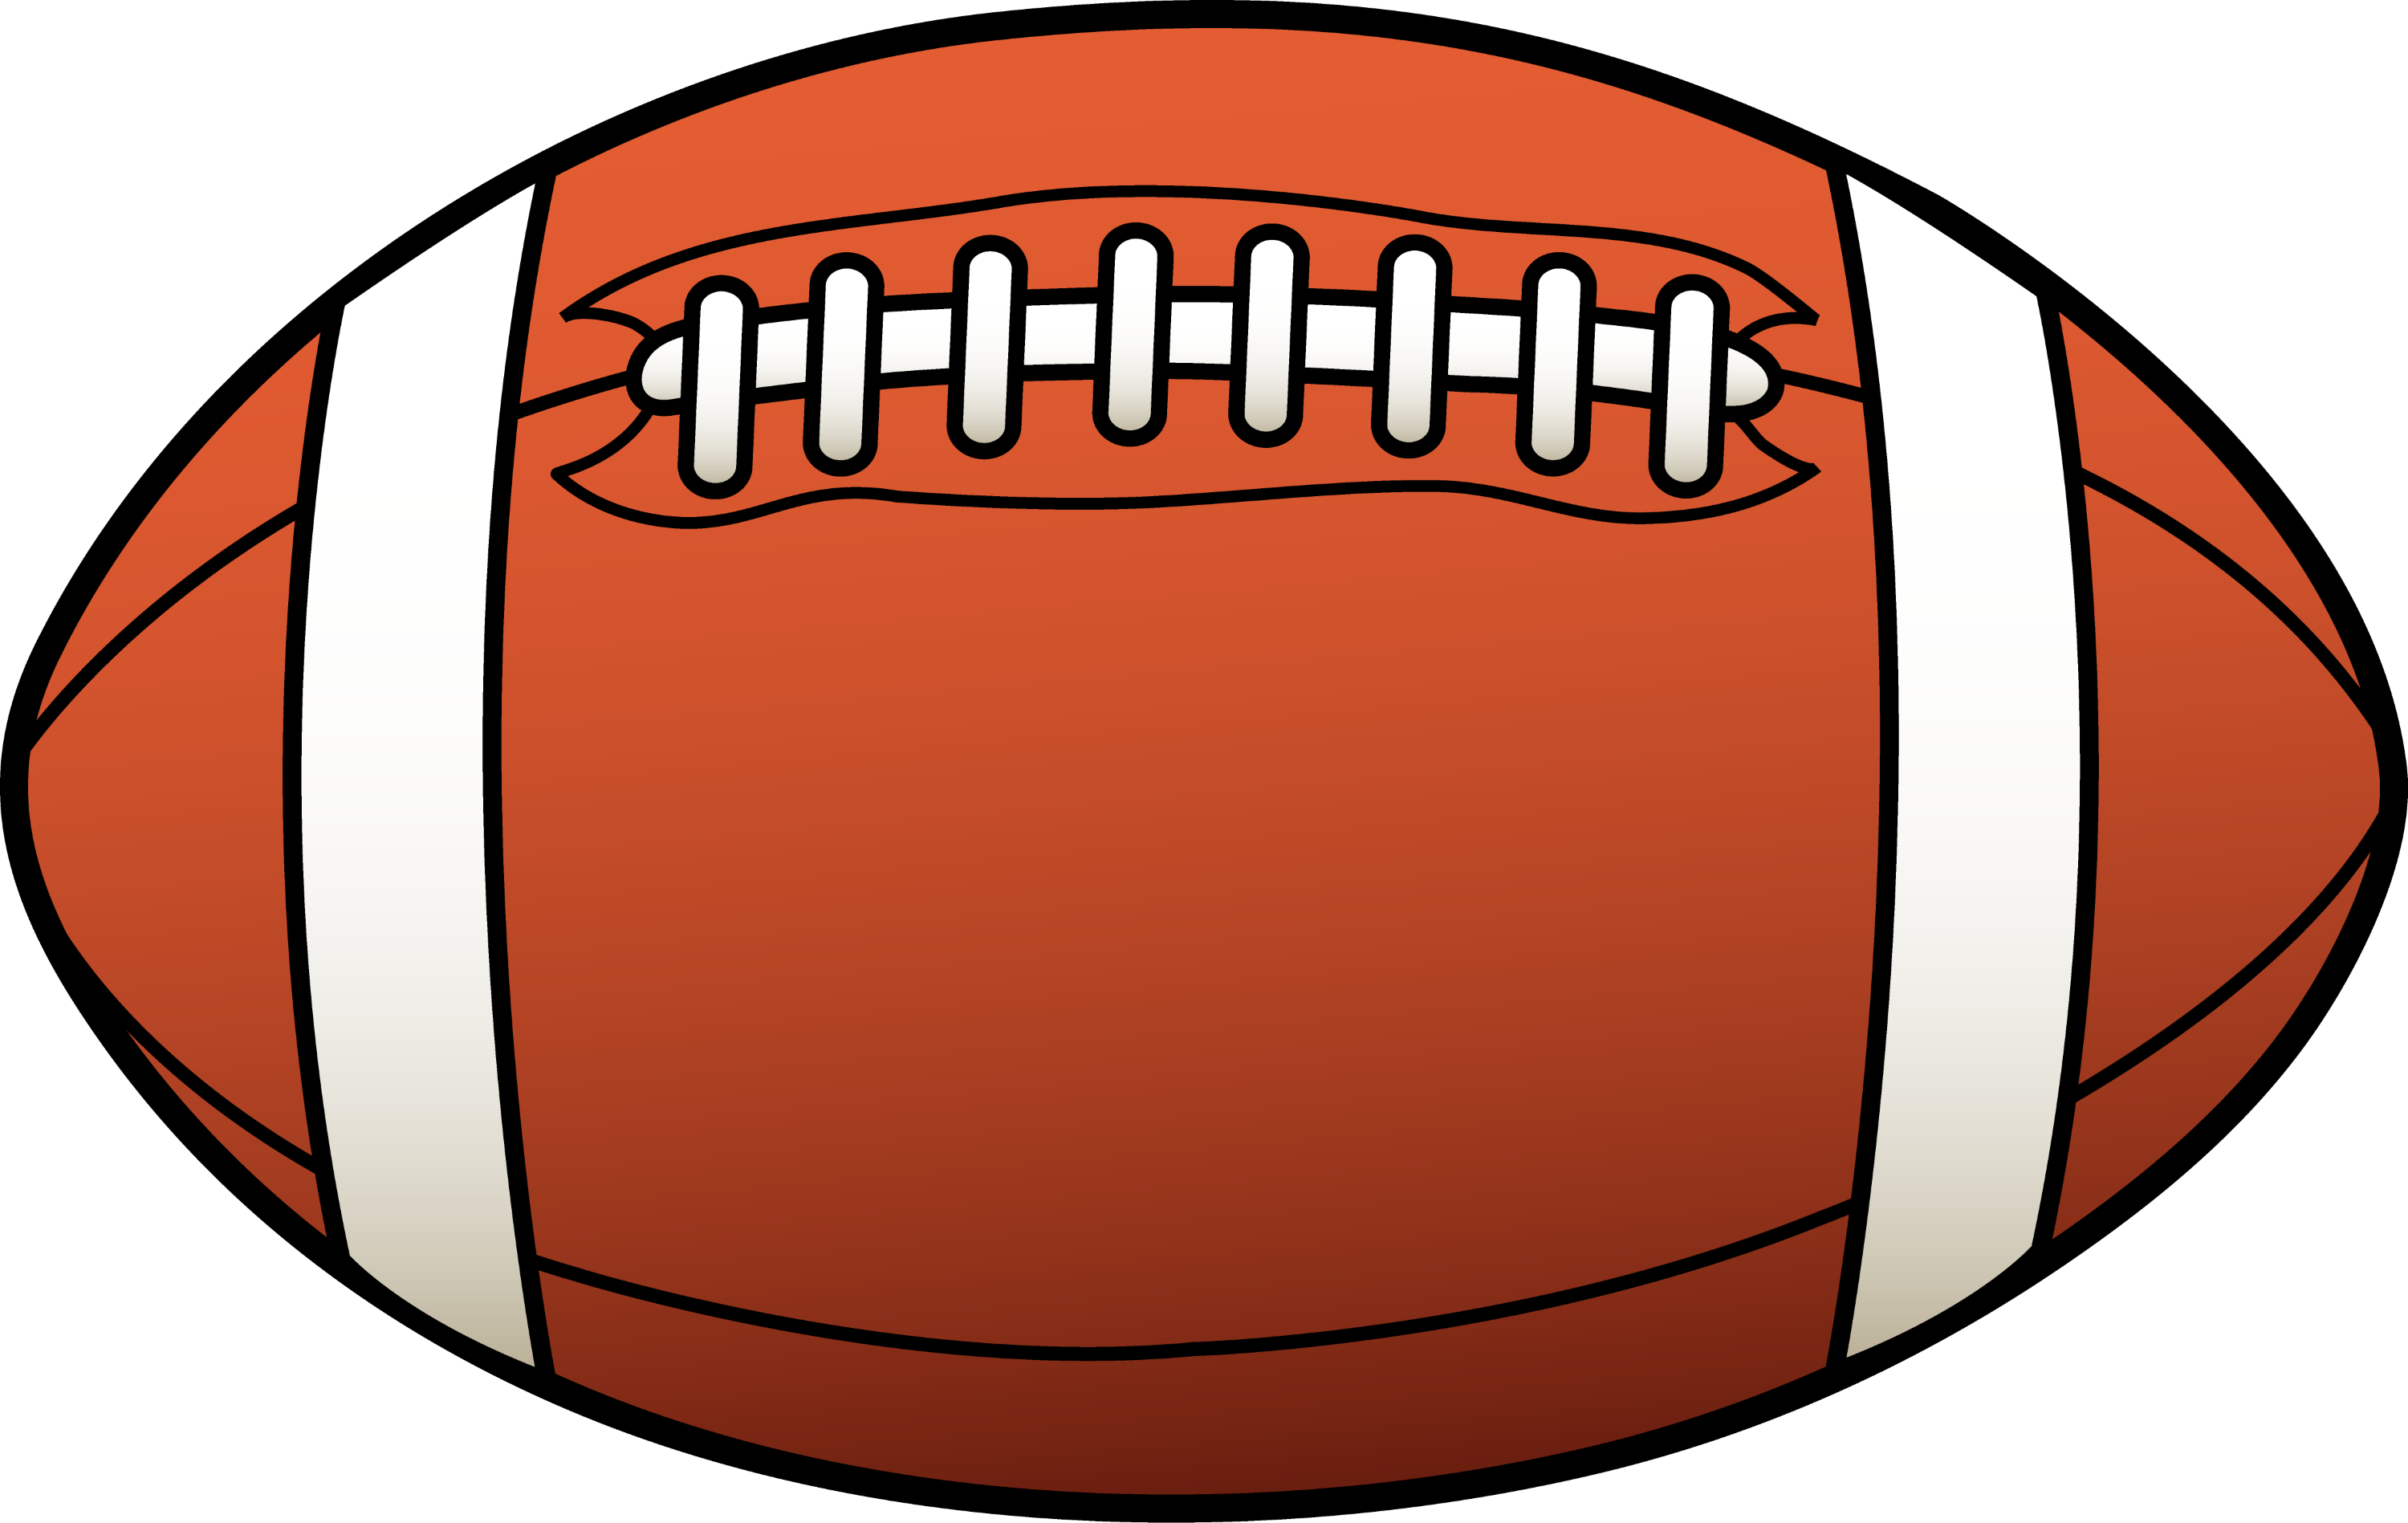 rugby ball or american football free clip art